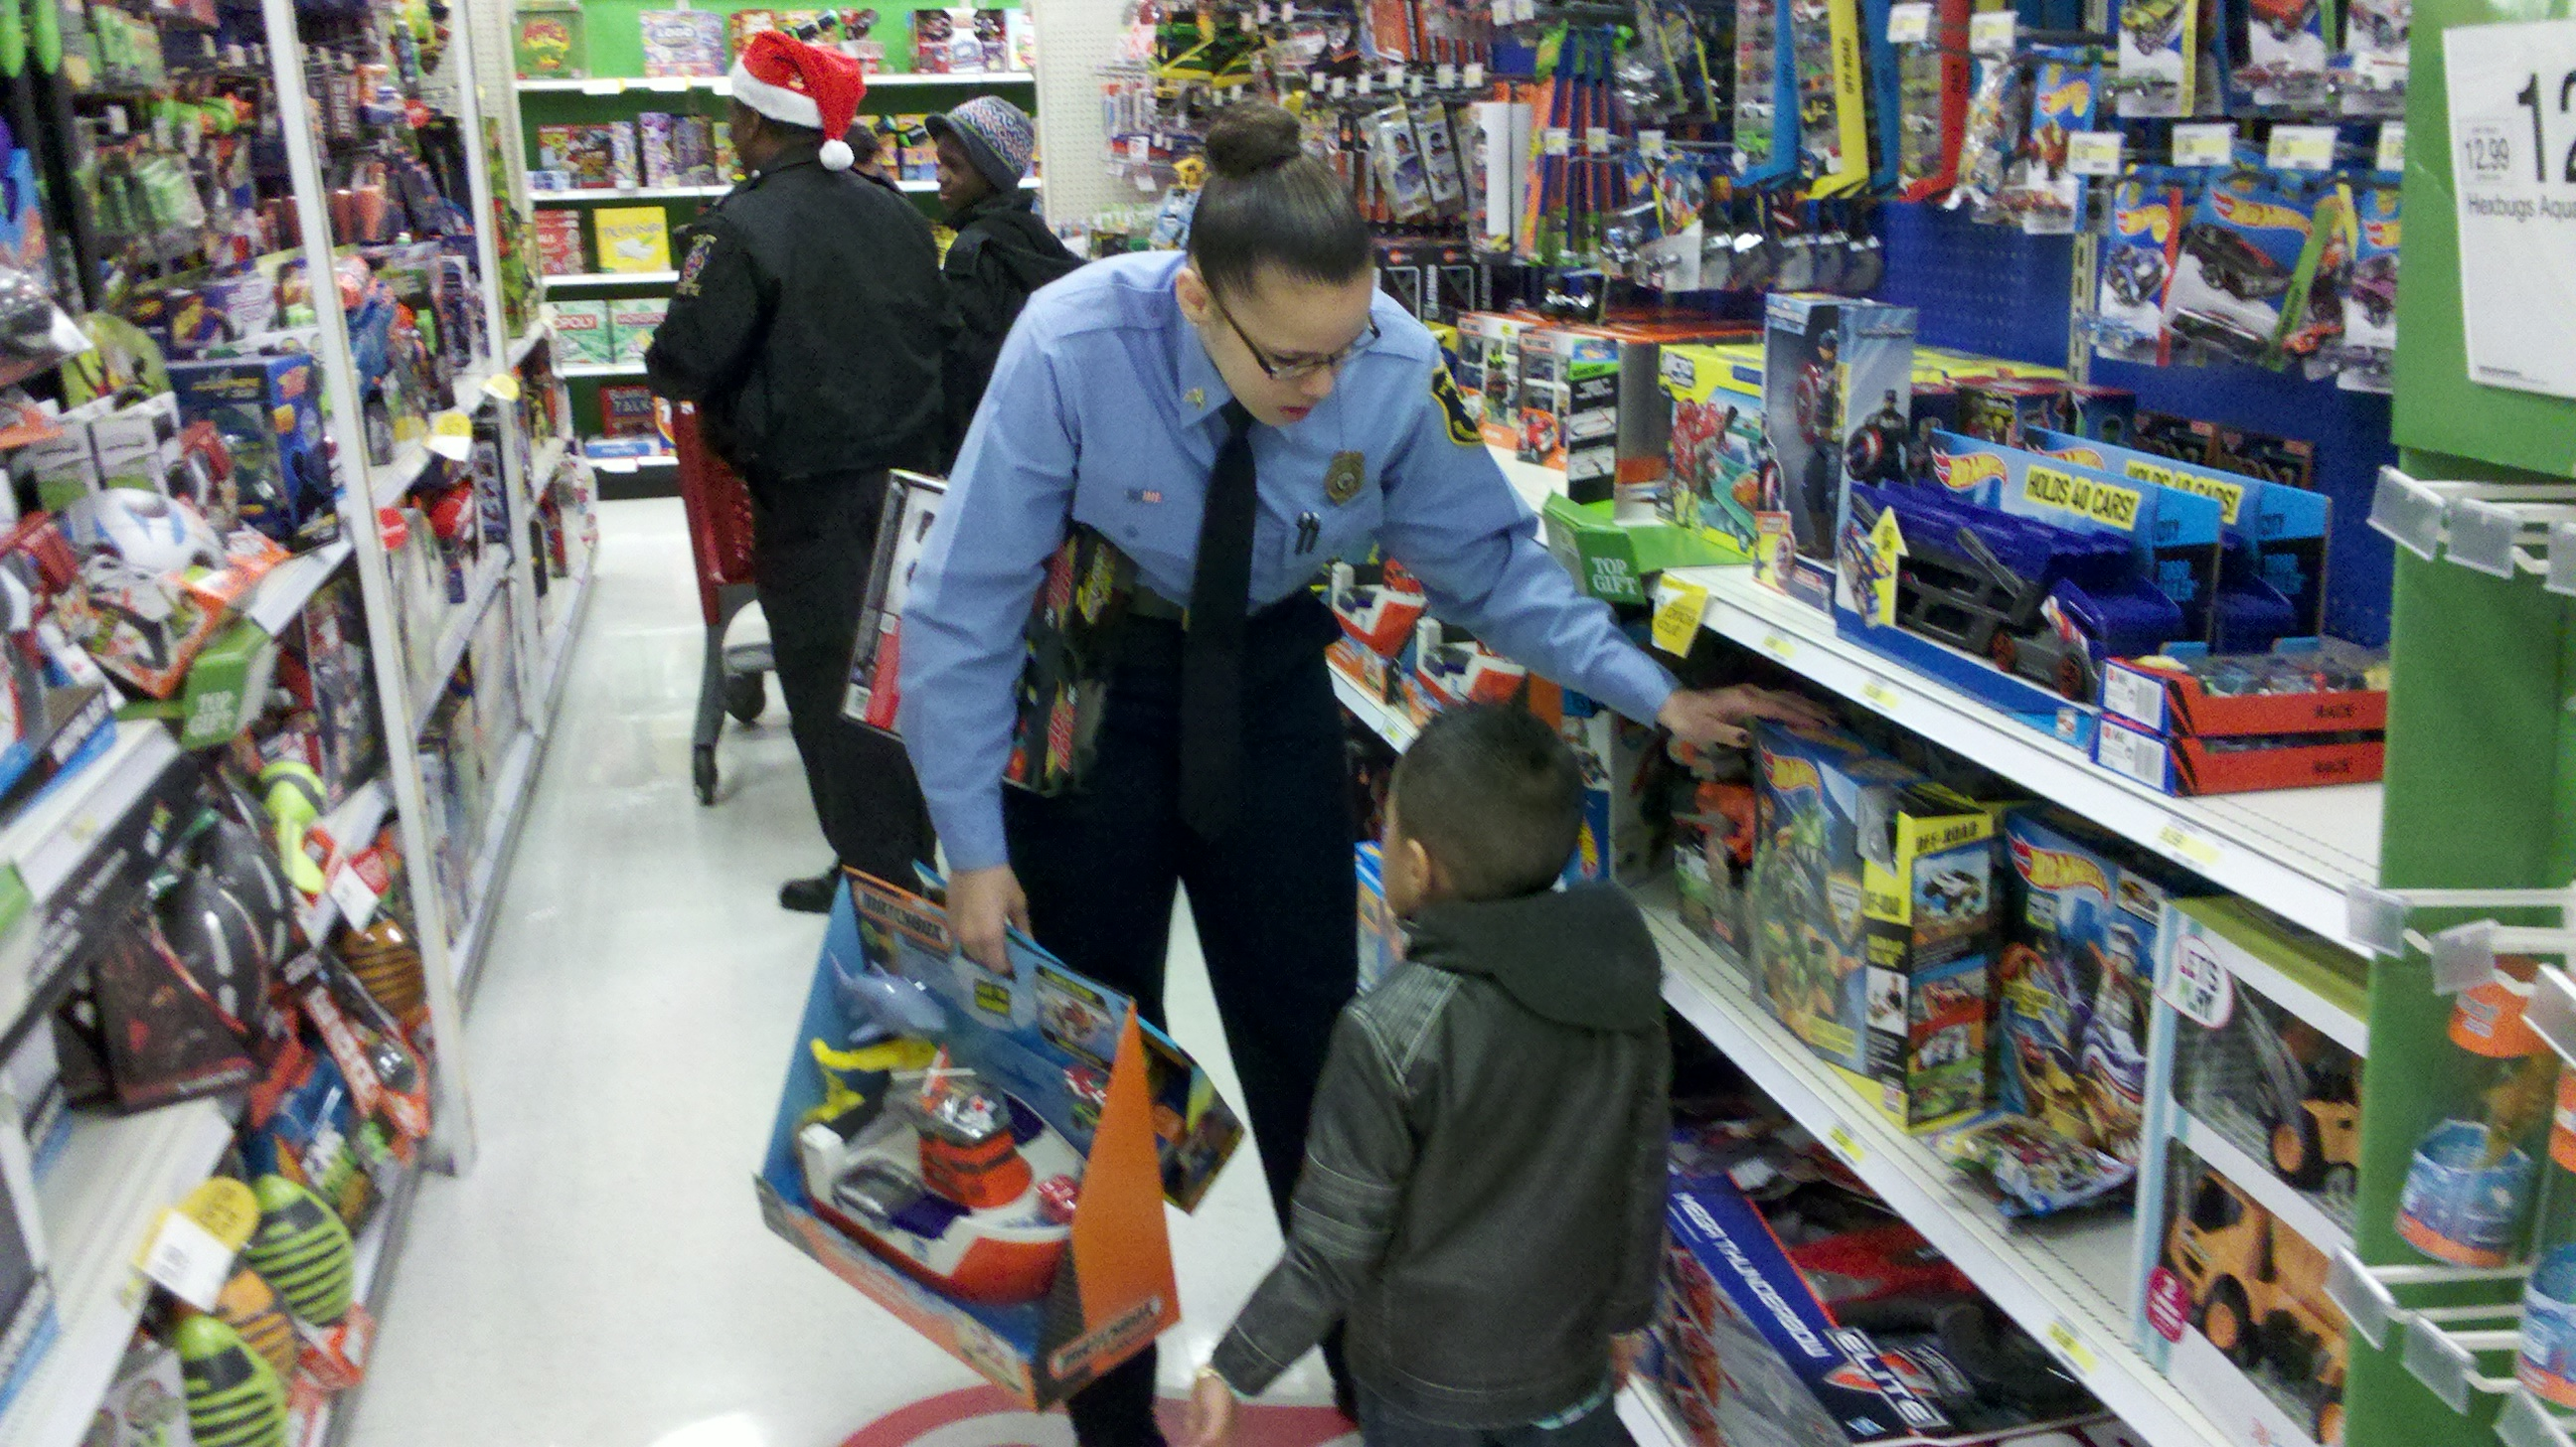 Montgomery County police brings Christmas joy to children